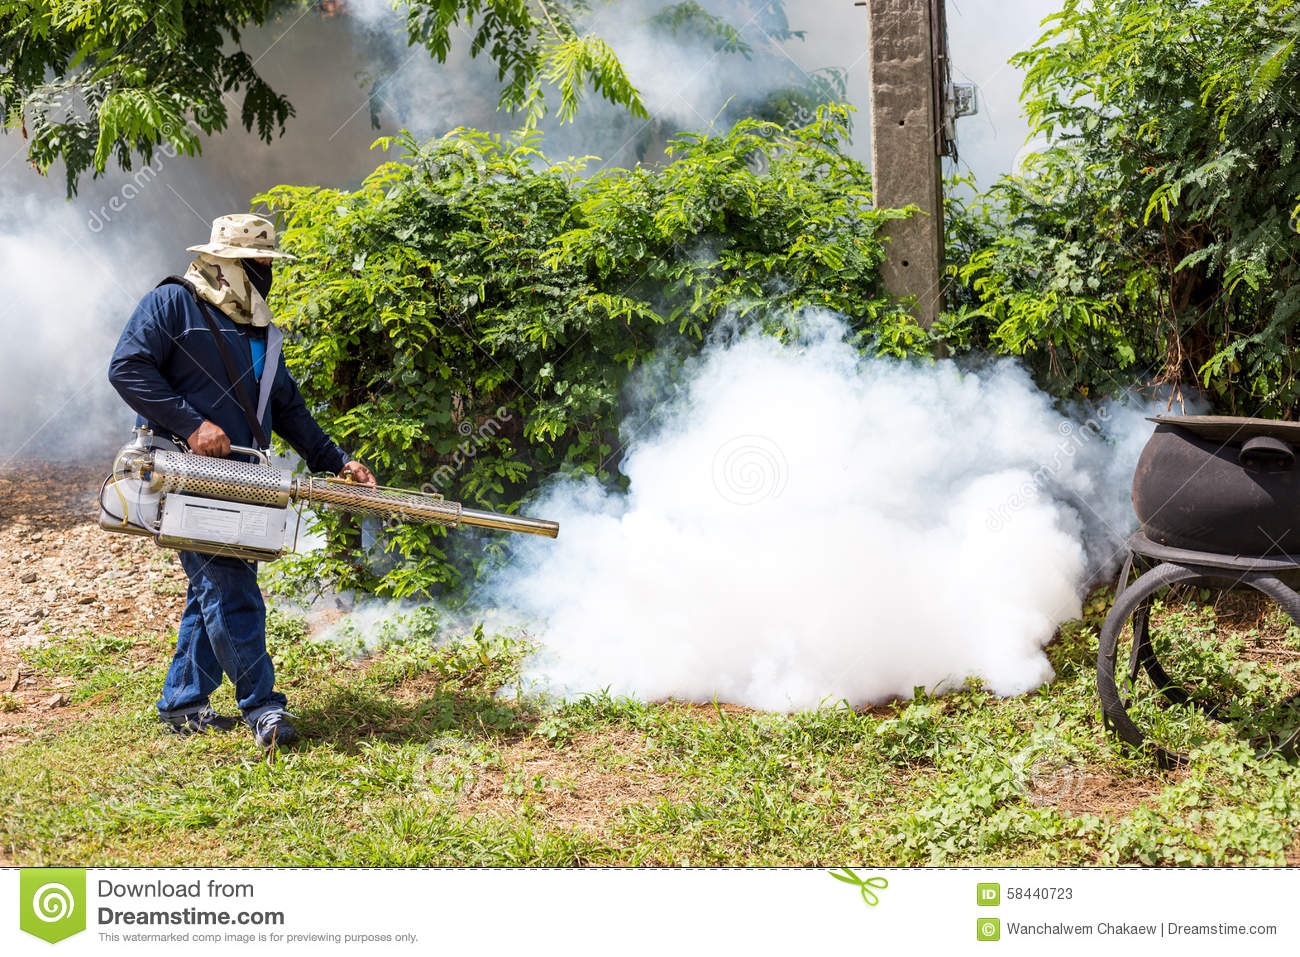 Fumigate Mosquito At Home For Protection Mosquito Stock Image - Image of karachi, exterminator: 58440723 - 웹